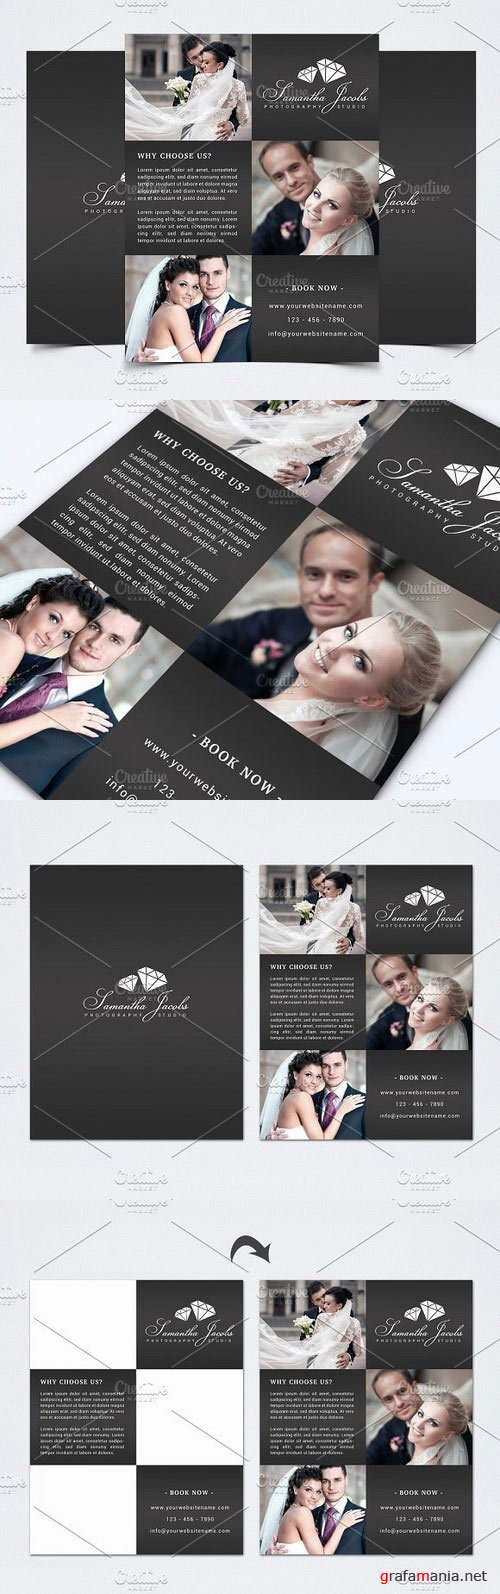 Photography Flyer Template - 1079136